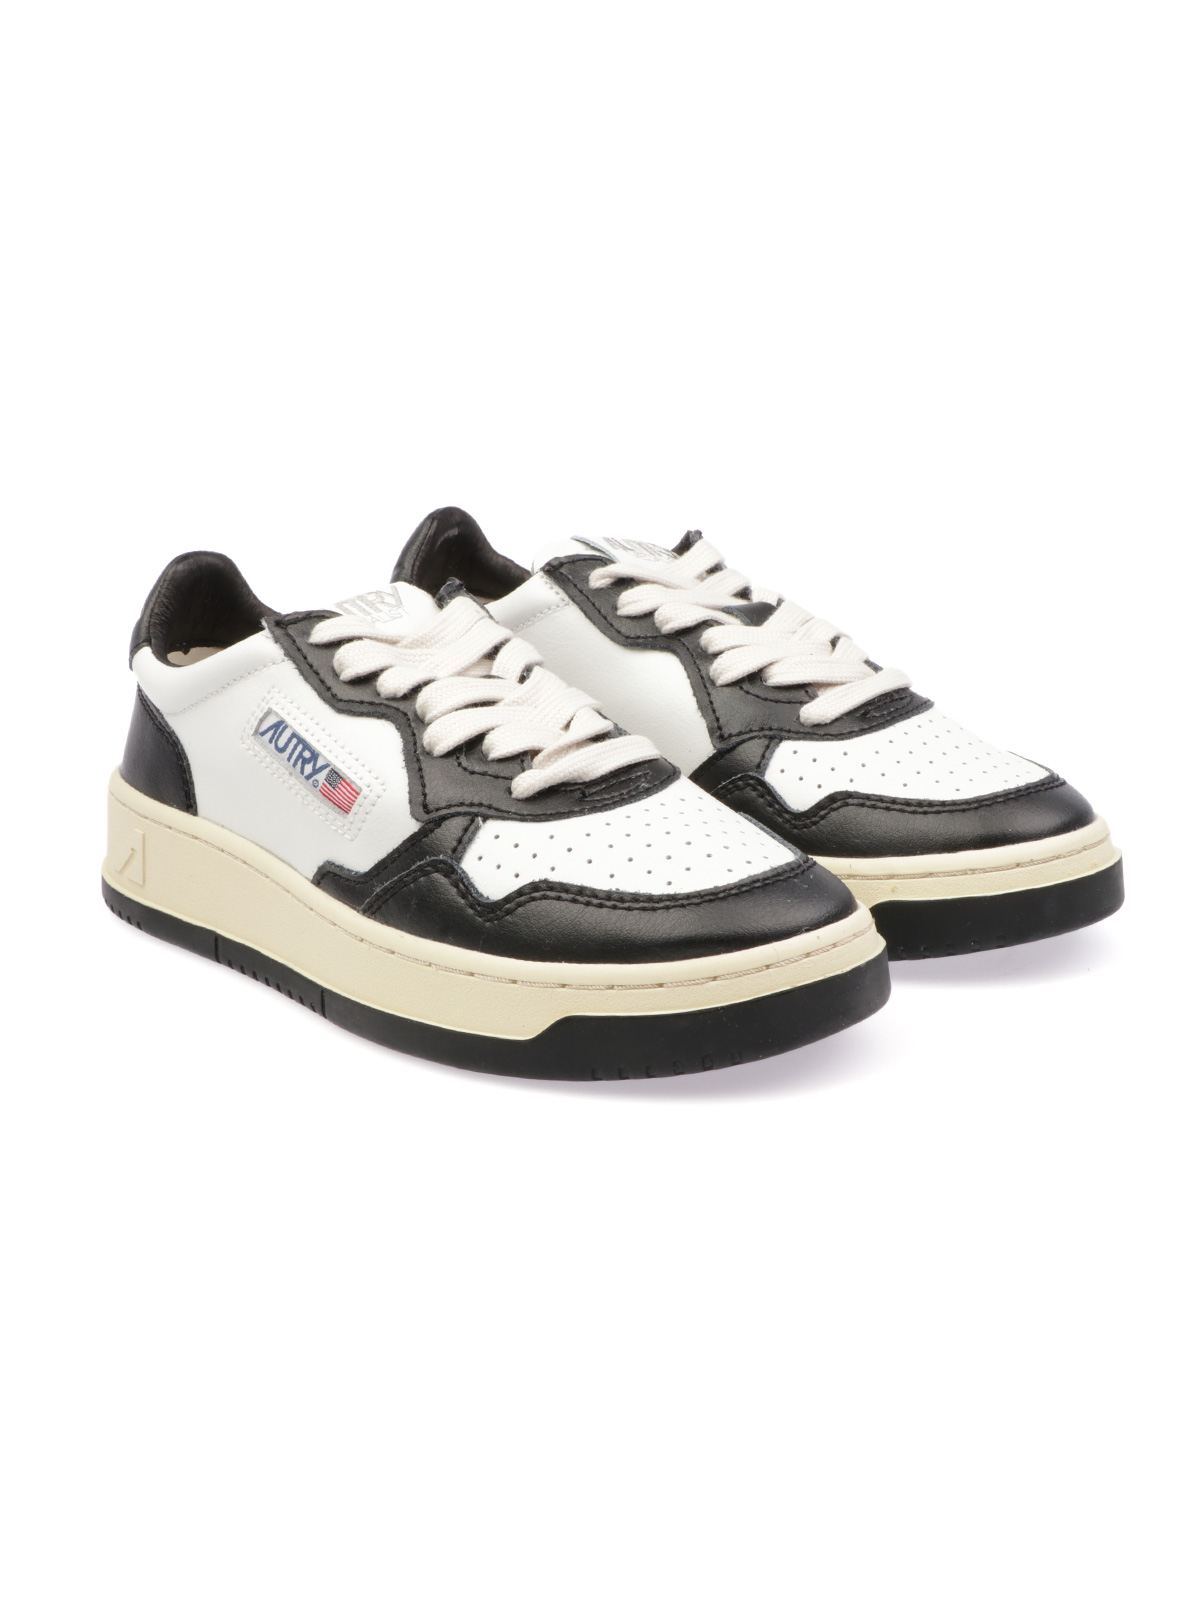 Picture of Autry   Footwear Sneakers